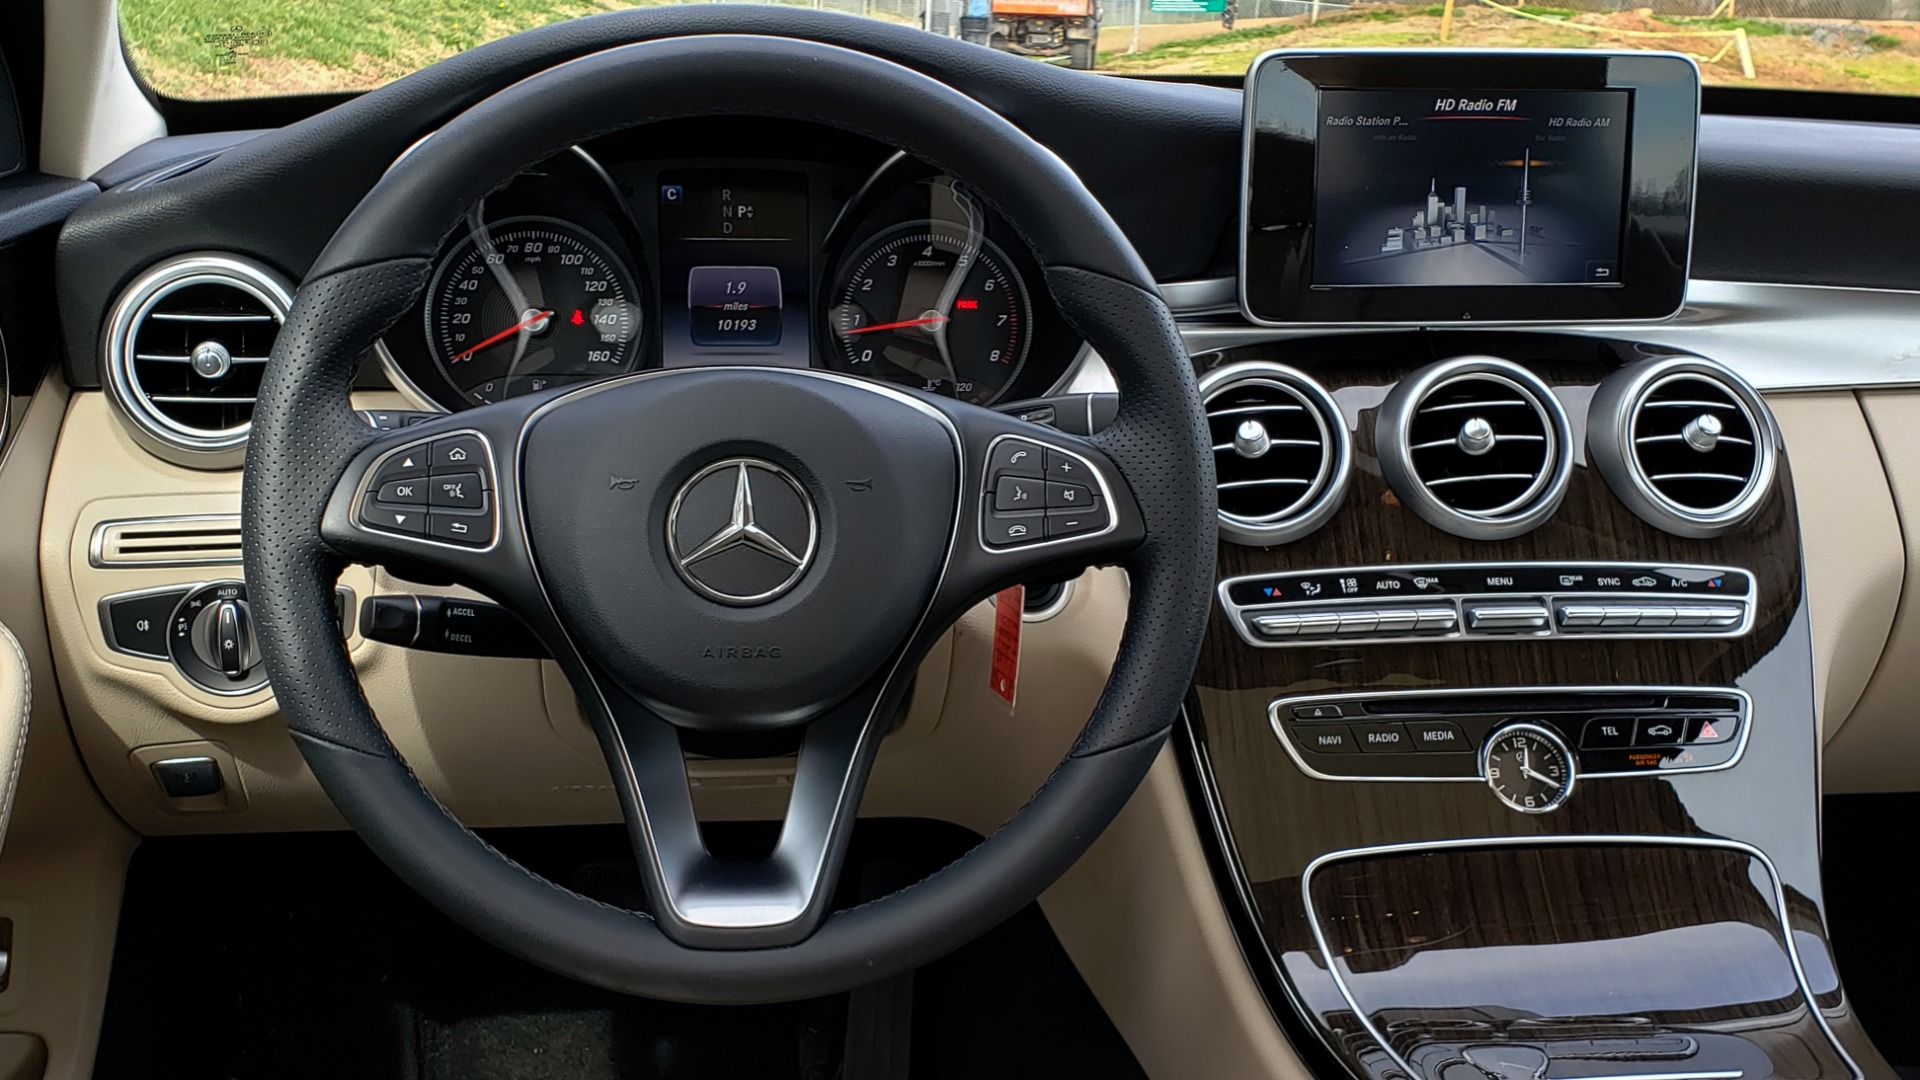 Used 2017 Mercedes-Benz C-CLASS C 300 / PREM PKG / PANO-ROOF / REARVIEW / HTD STS for sale Sold at Formula Imports in Charlotte NC 28227 27